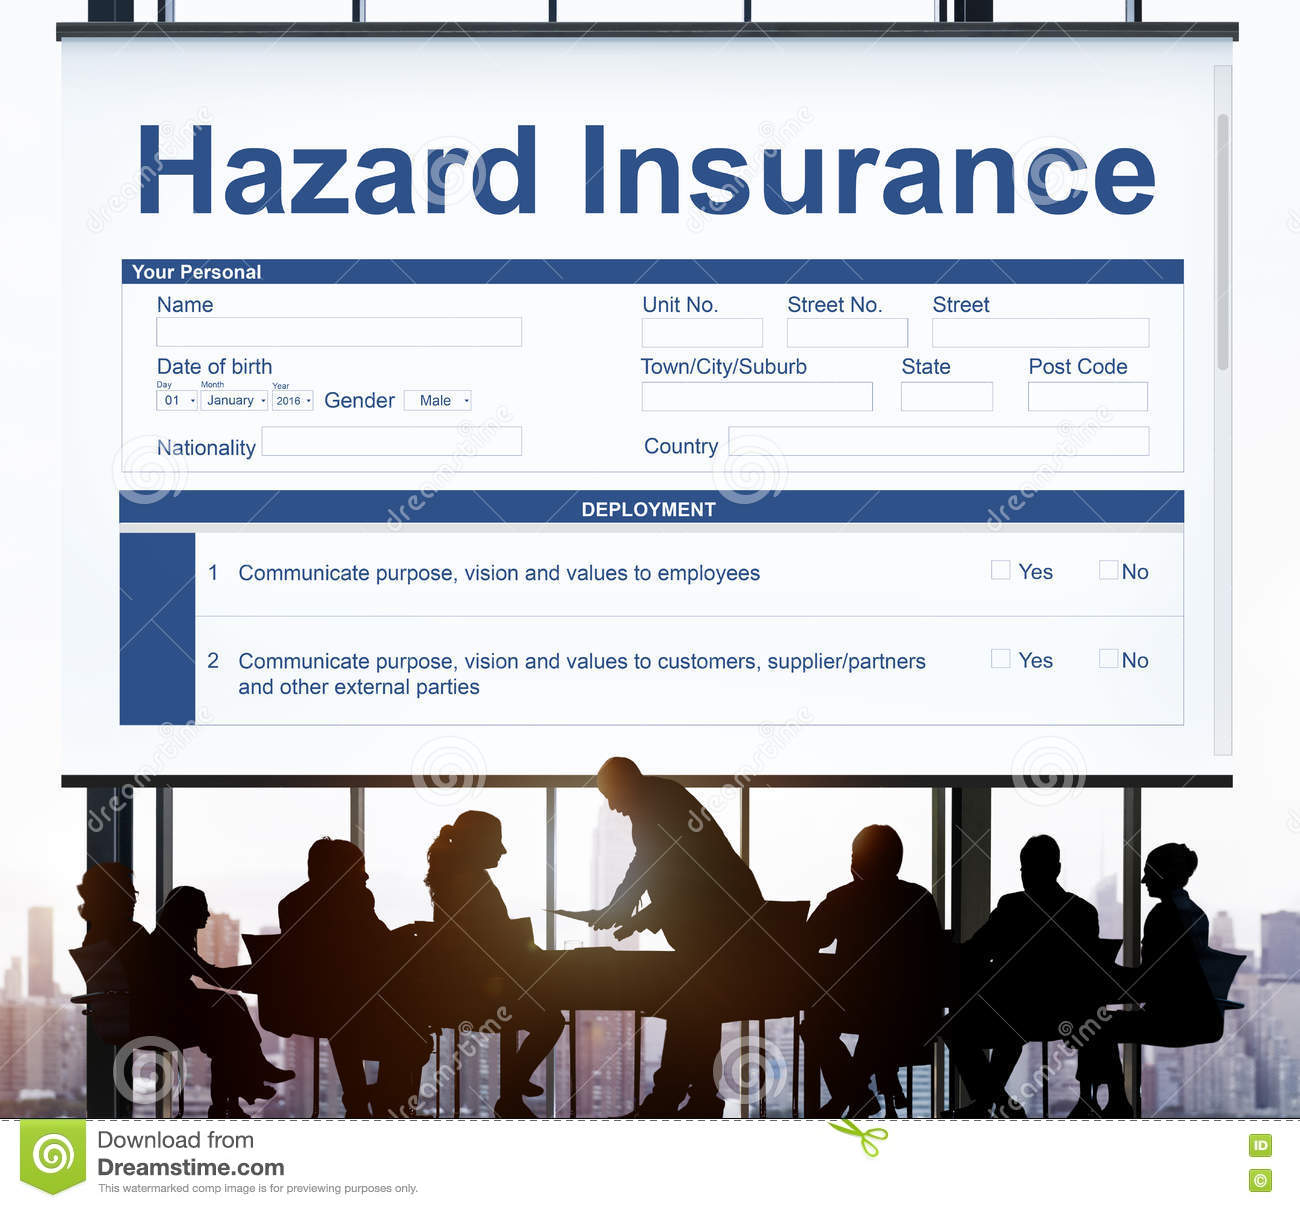 Hazard Insurance Quotes Extraordinary Hazard Insurance Quote  44Billionlater